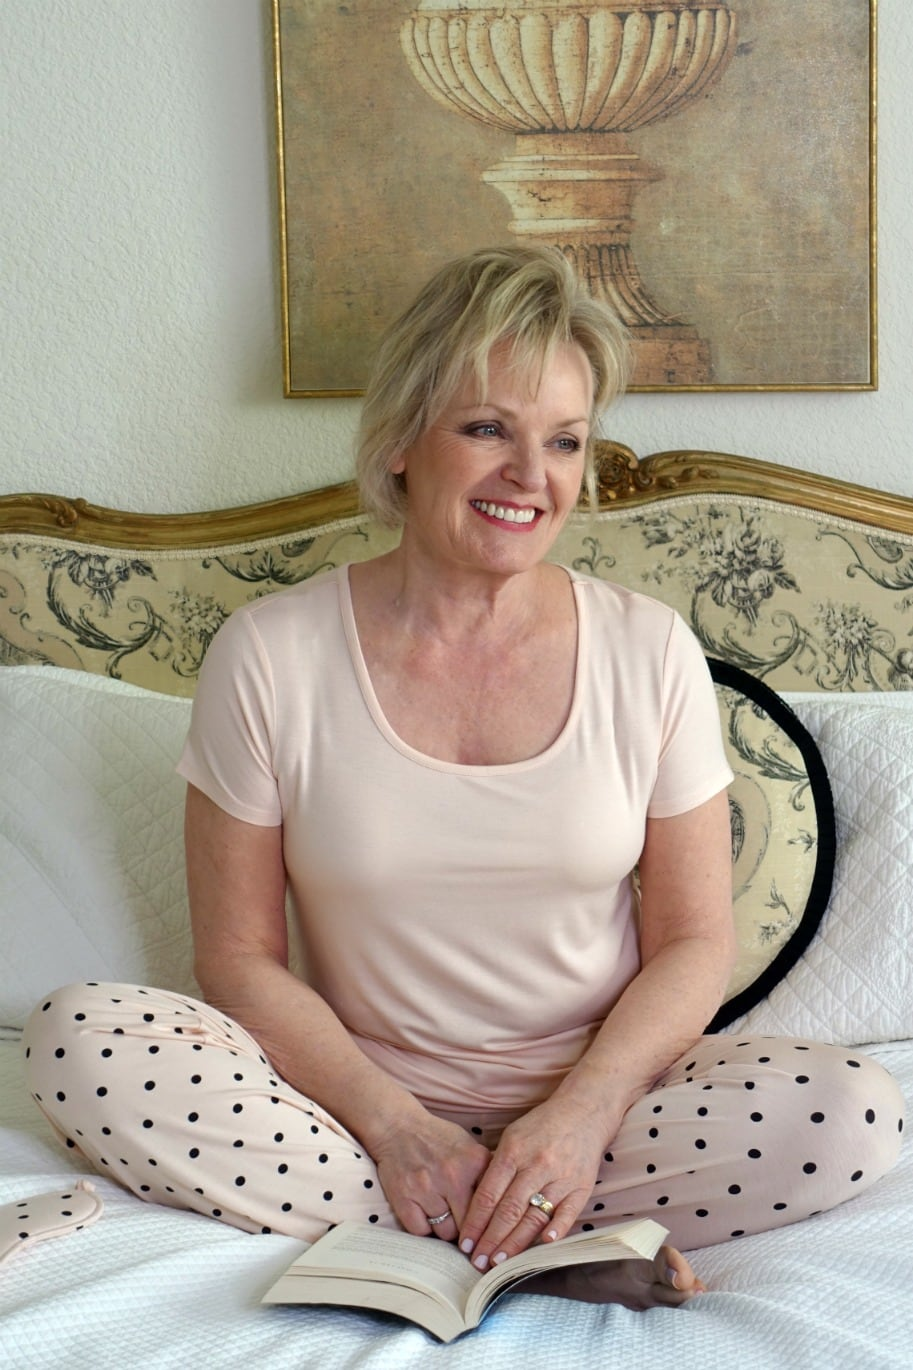 Jennifer of A Well Styled Life wearing Soma's Cool Nights Pajama set in peach Dot